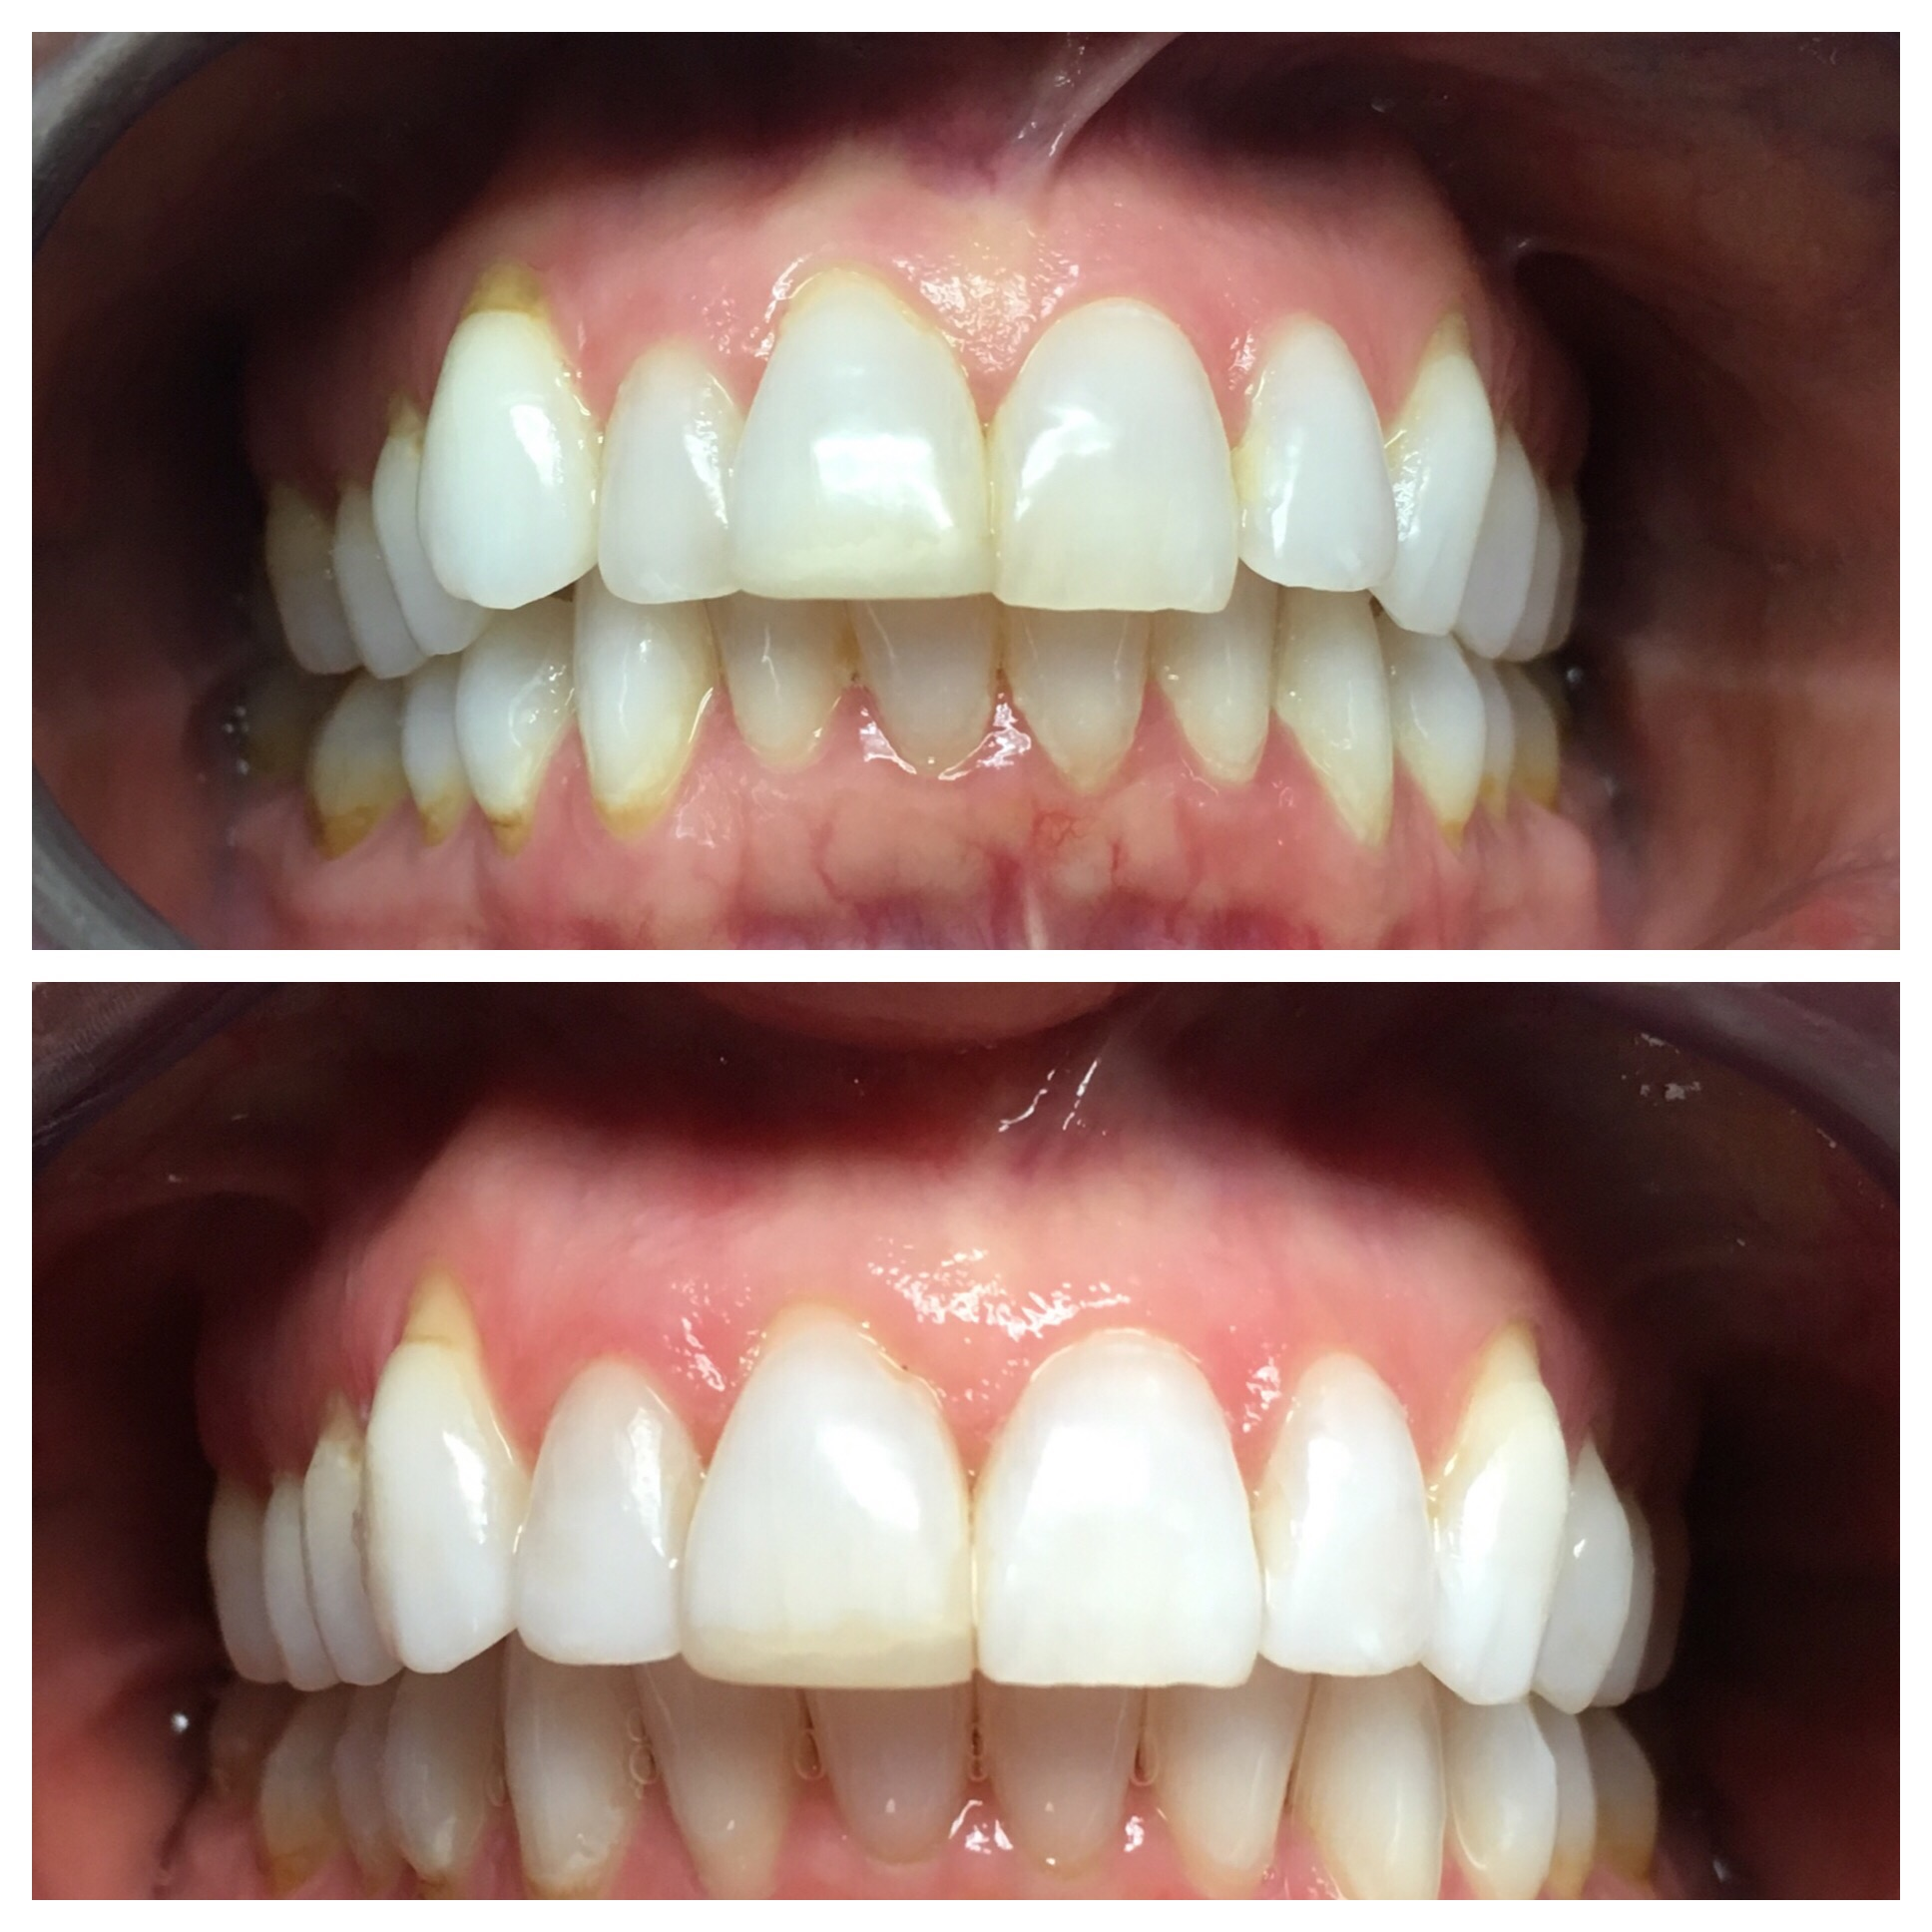 This patient was treated in under 12 months